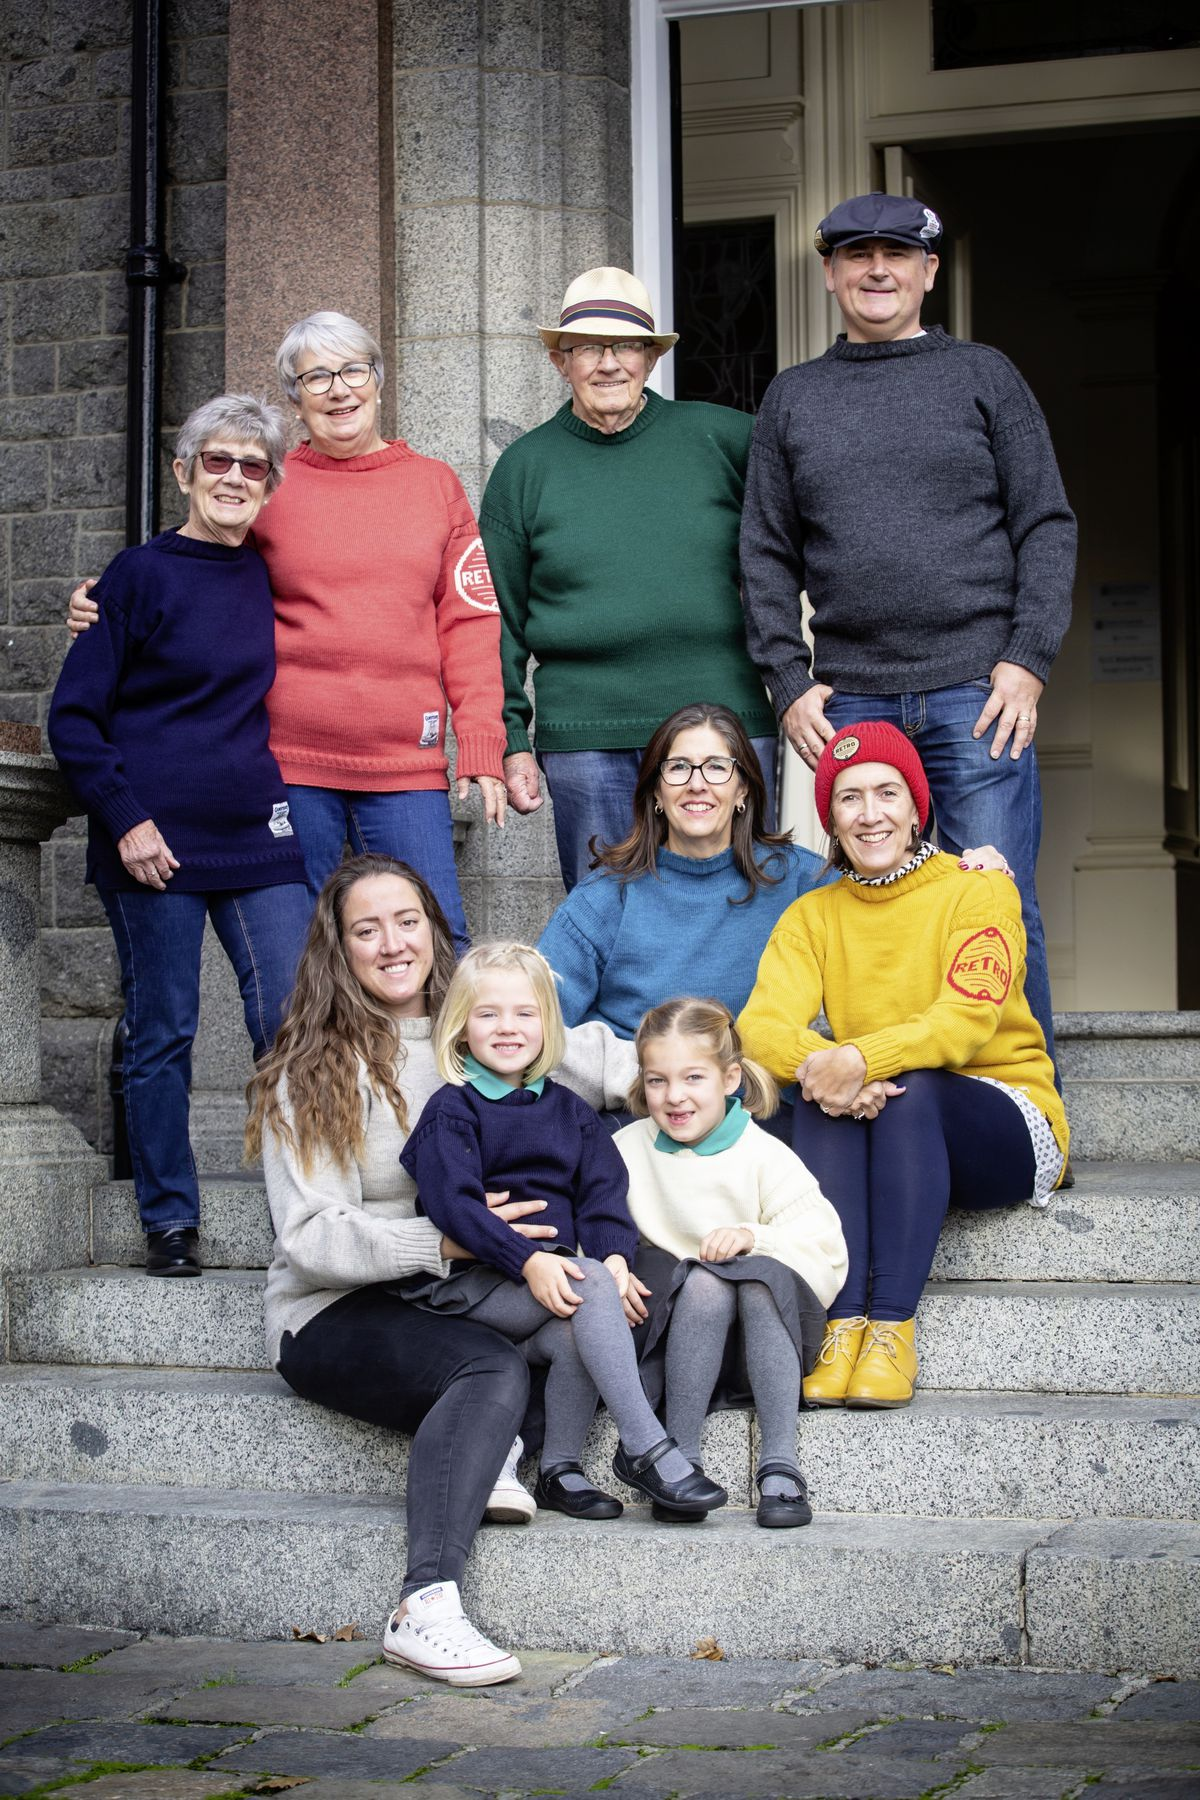 Four generations of one family wearing Guernsey jumpers took part in yesterday's Wear a Guernsey Day at the Tourist Information Centre. Left to right, back, Val Bailey, Ann Carroll, Don Bailey, Quentin Vohmann. Middle, Louise Sands, left, and Alison Vohmann. Front, left to right, Jemma Wilson with Ren Breaton, 4, and Eden Breaton, 6. 	(Picture by Peter Frankland, 28930429)